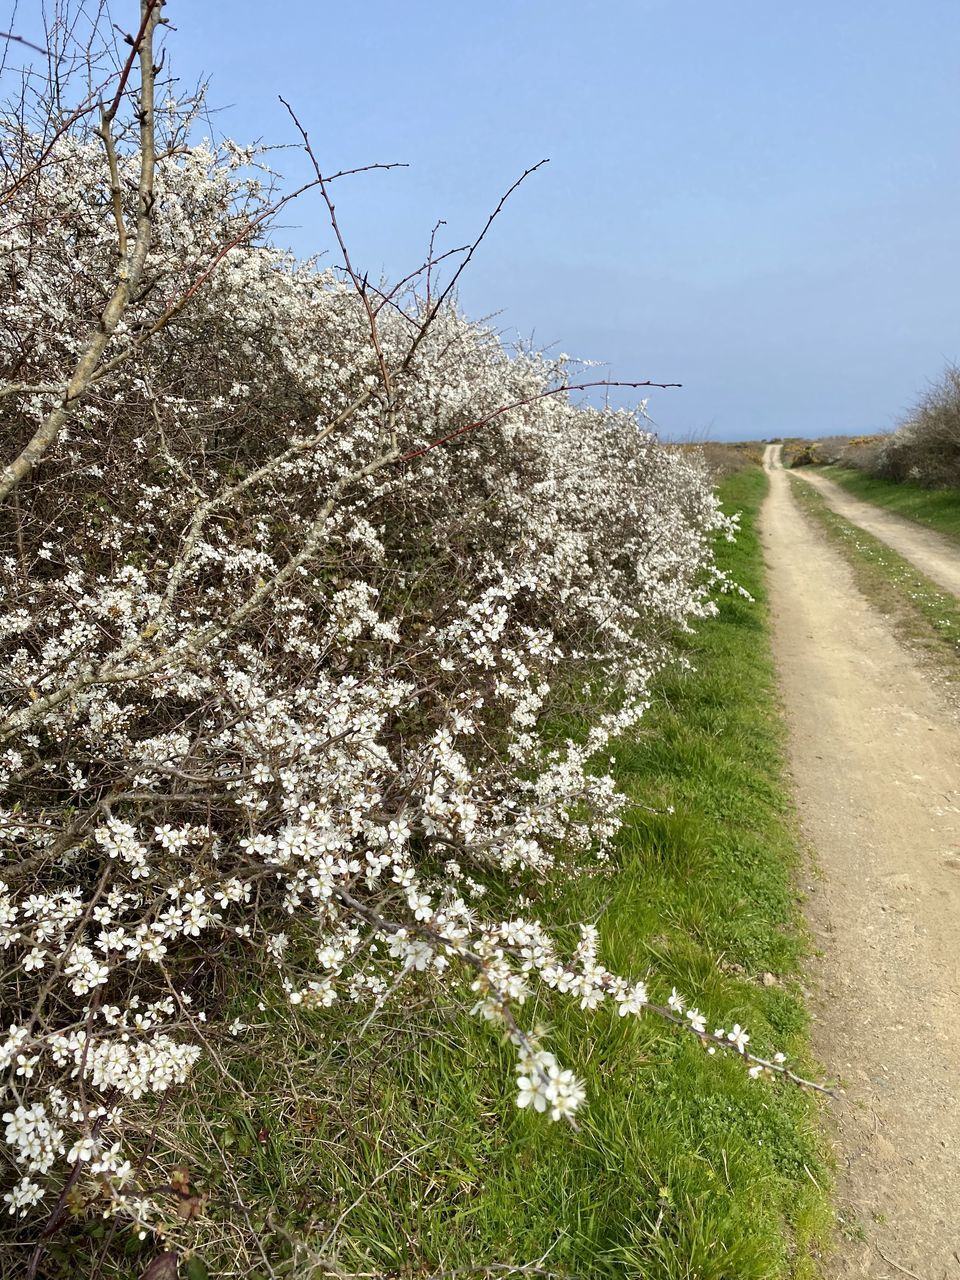 VIEW OF WHITE FLOWERING PLANTS BY ROAD